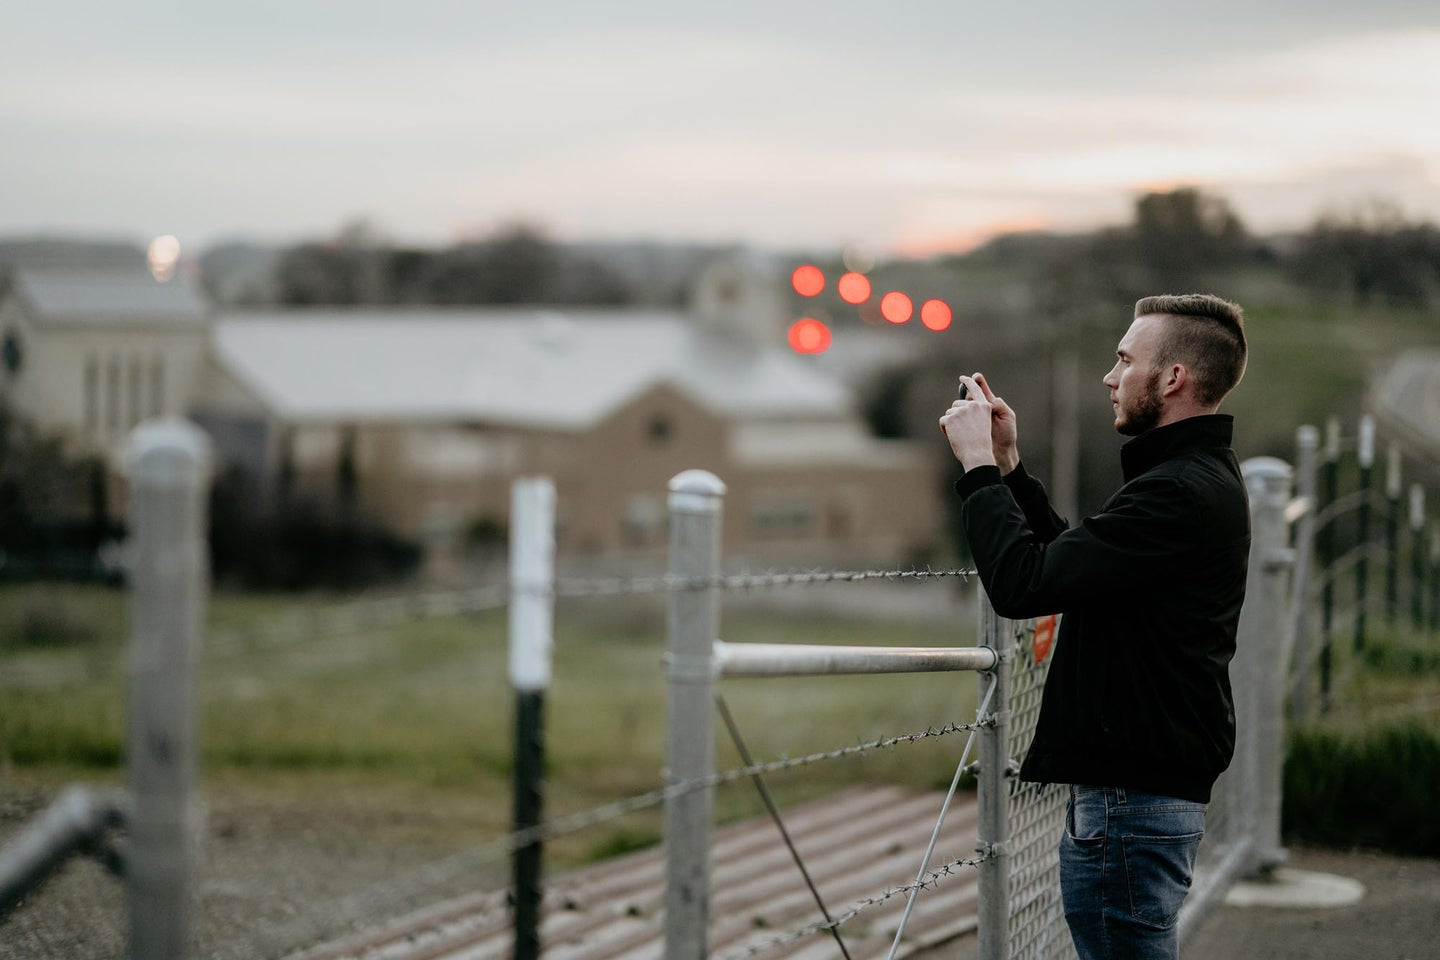 guy taking a photo with the best camera phone on a bridge.